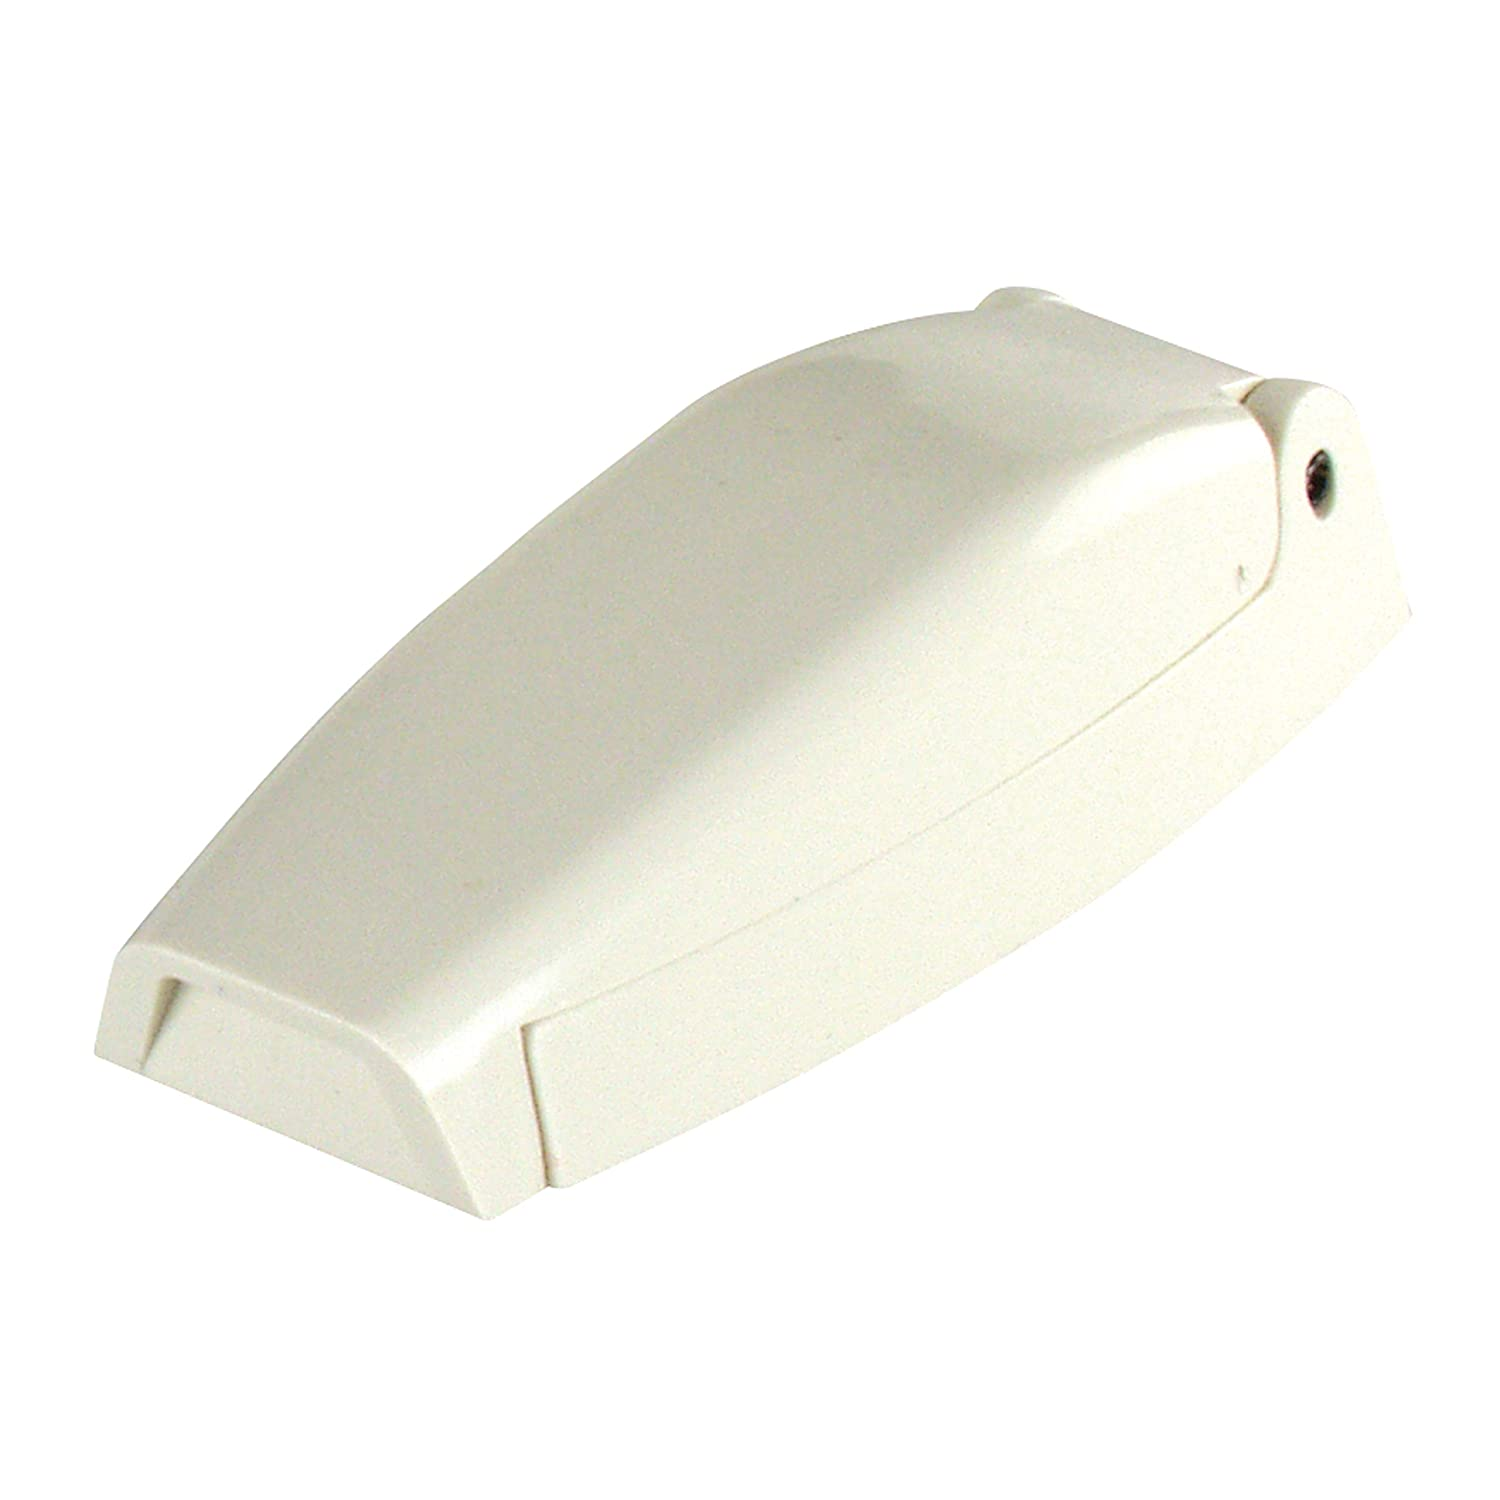 JR Products 10234 Baggage Door Catch - White, Pack of 2